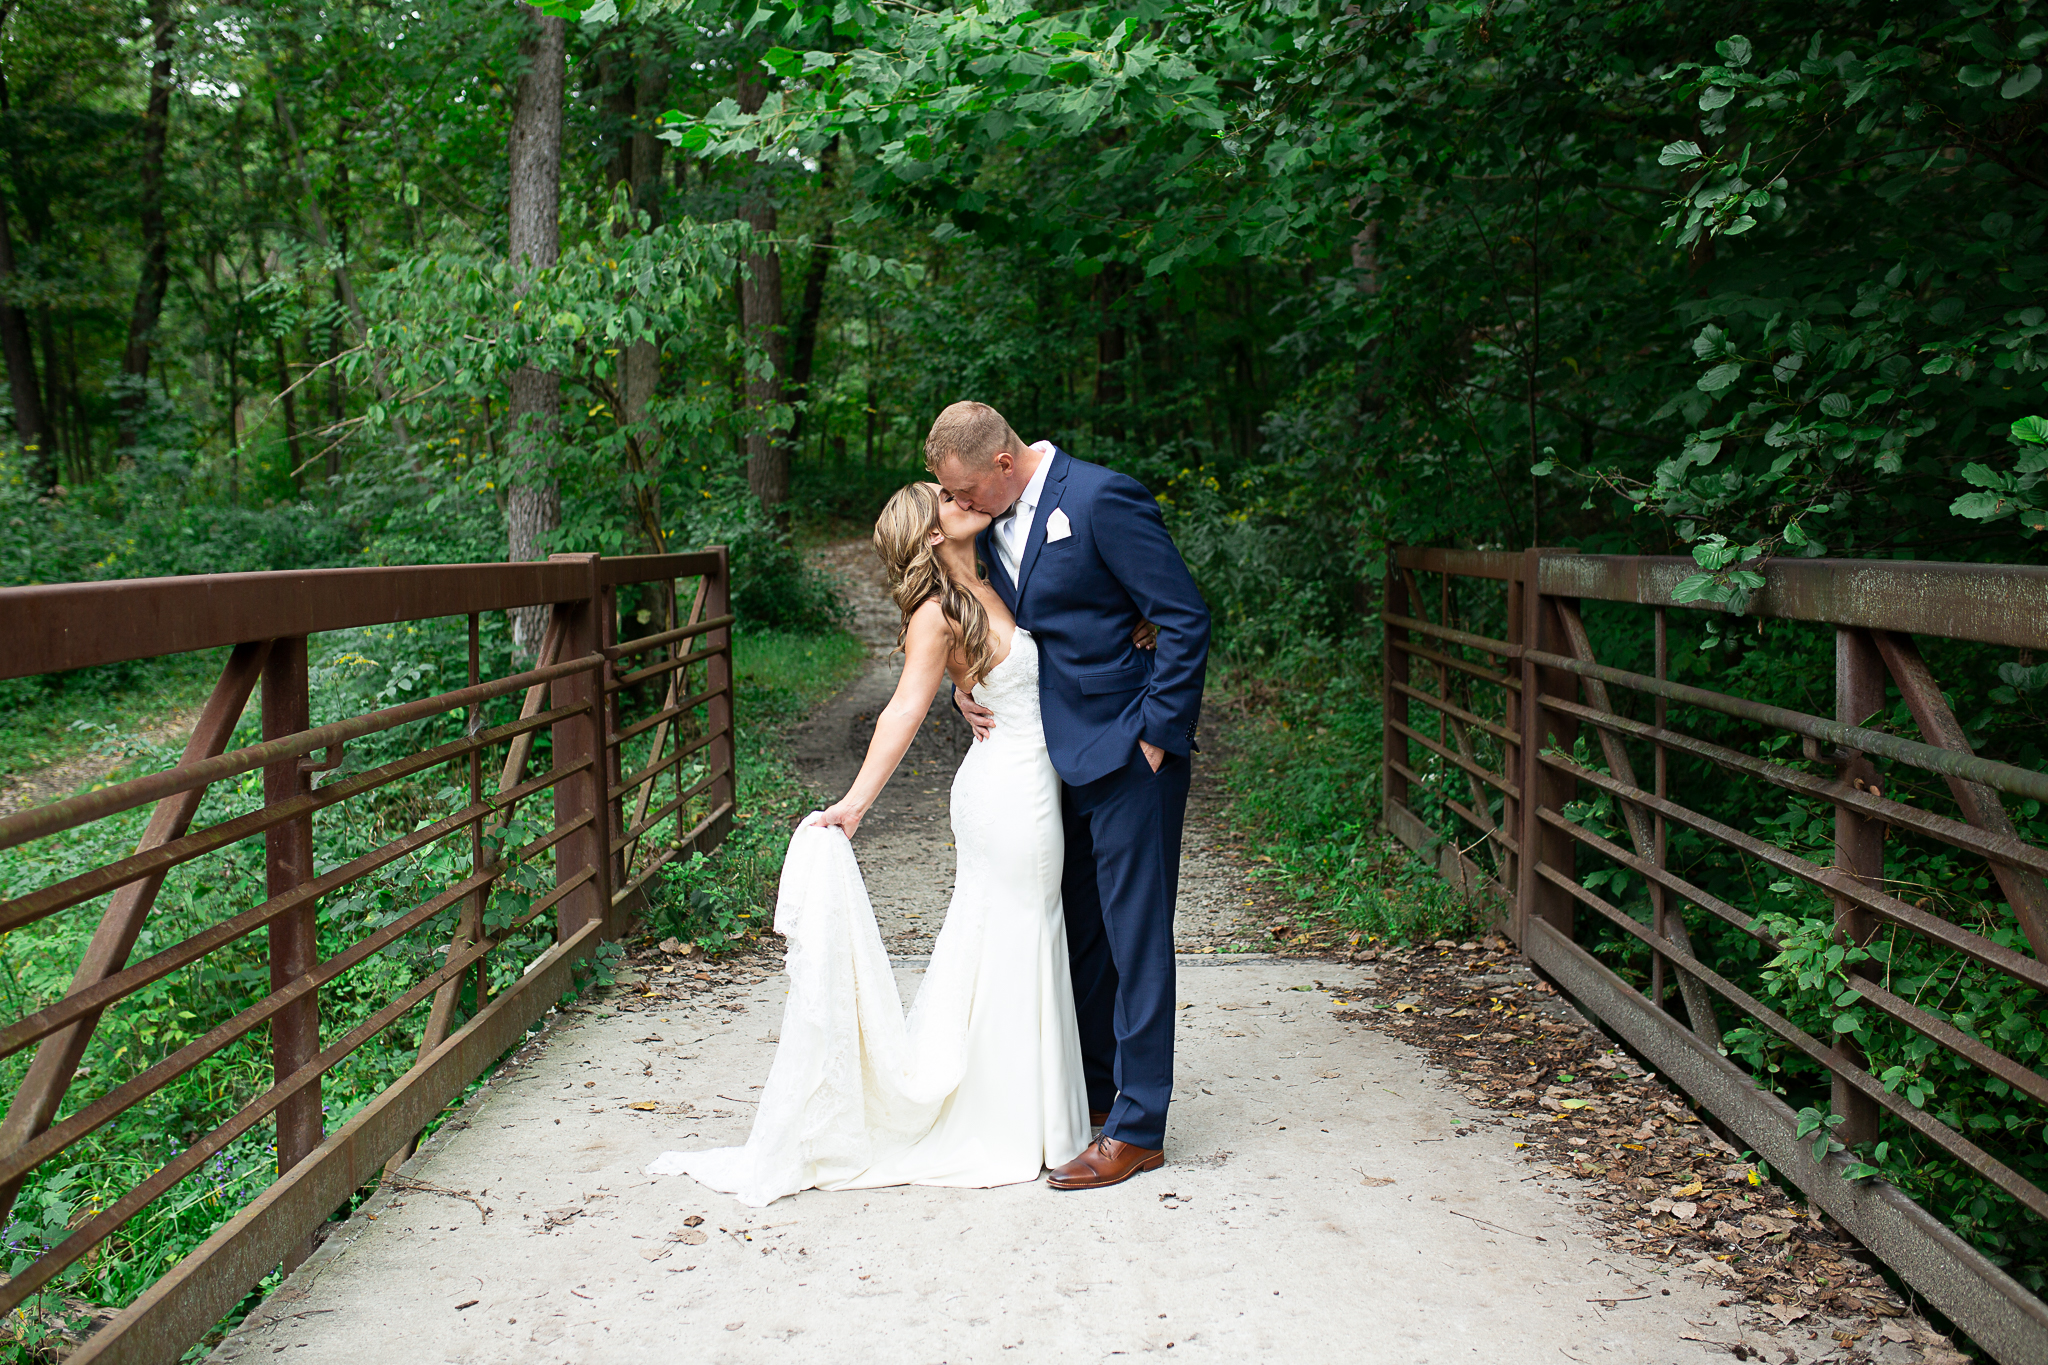 Bride and groom posing on a bridge in the woods